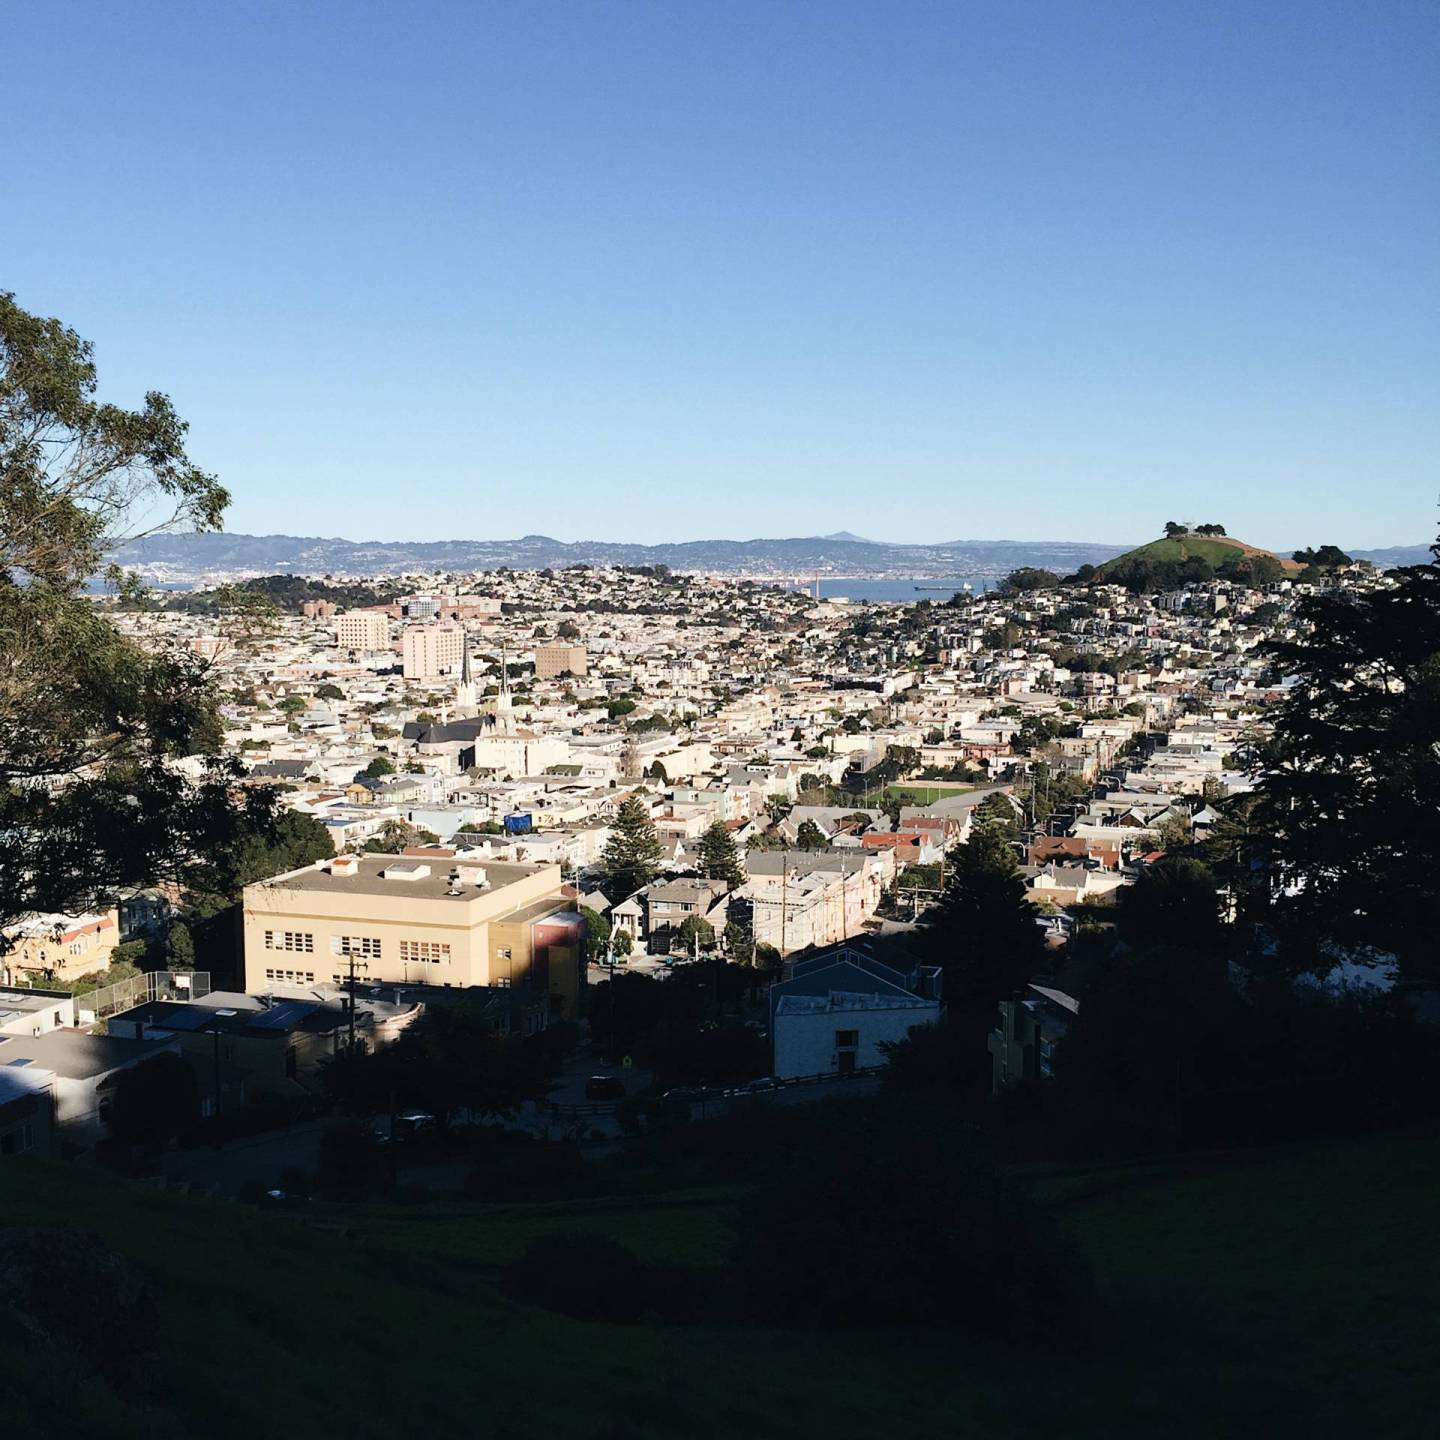 6 Unexpected Locations for a Fall Getaway - #5 San Francisco